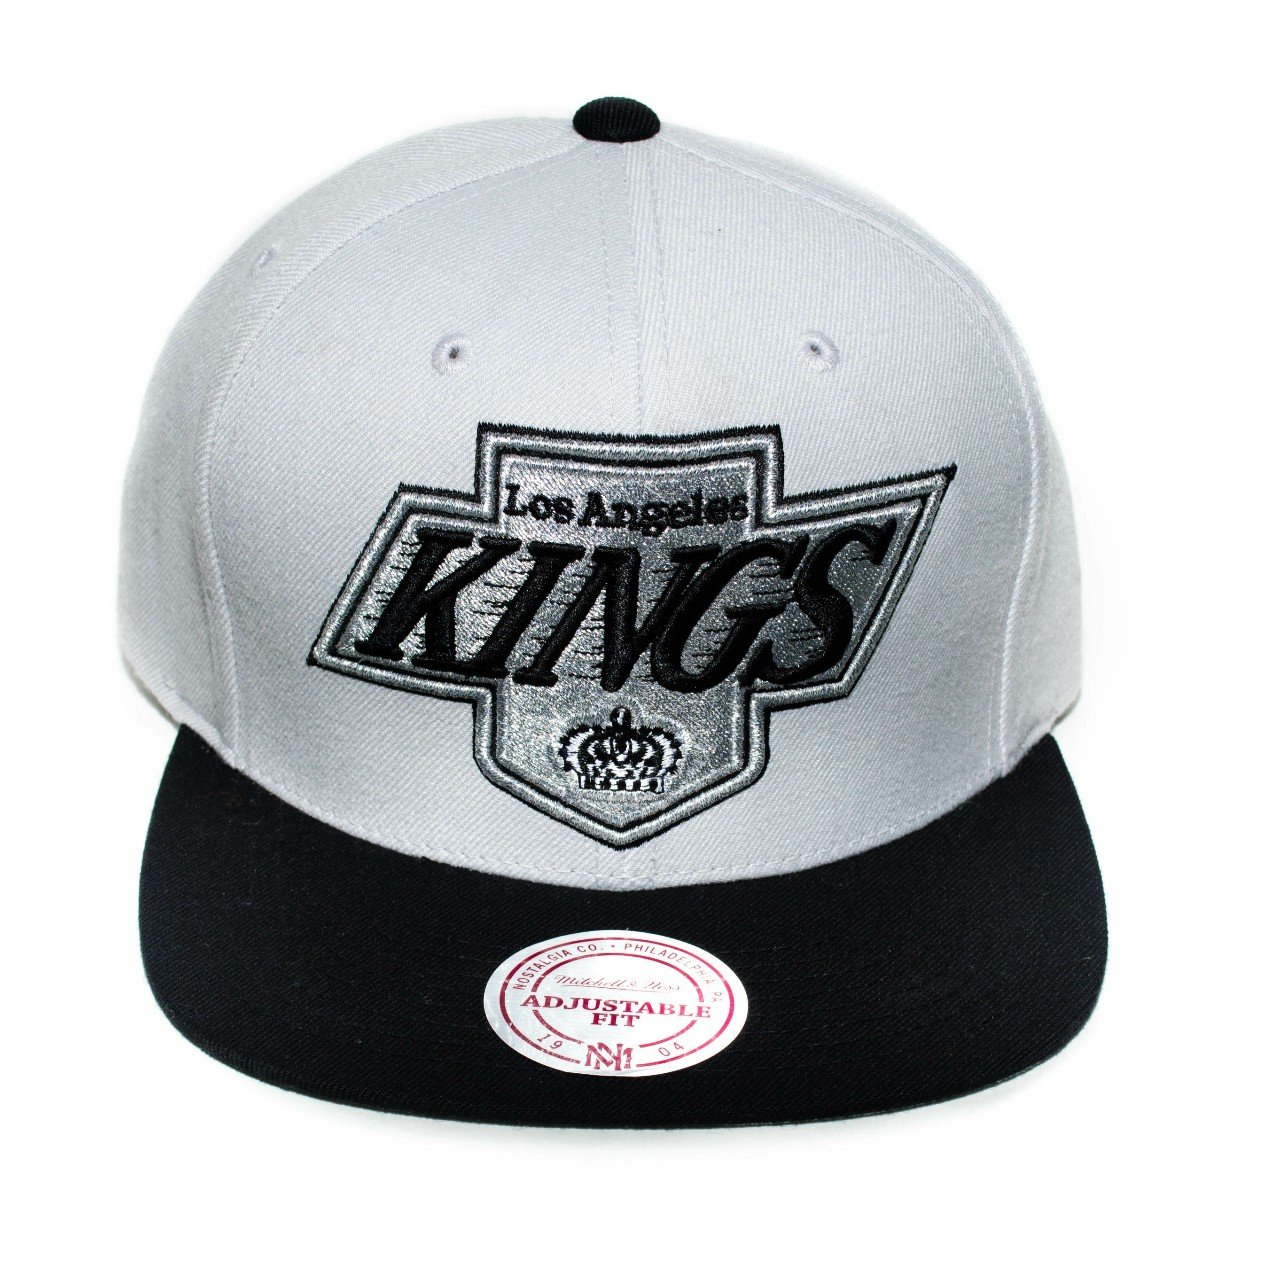 d50db44fb76 Los Angeles Kings Mitchell and Ness Snapback Brand  hat - Depop